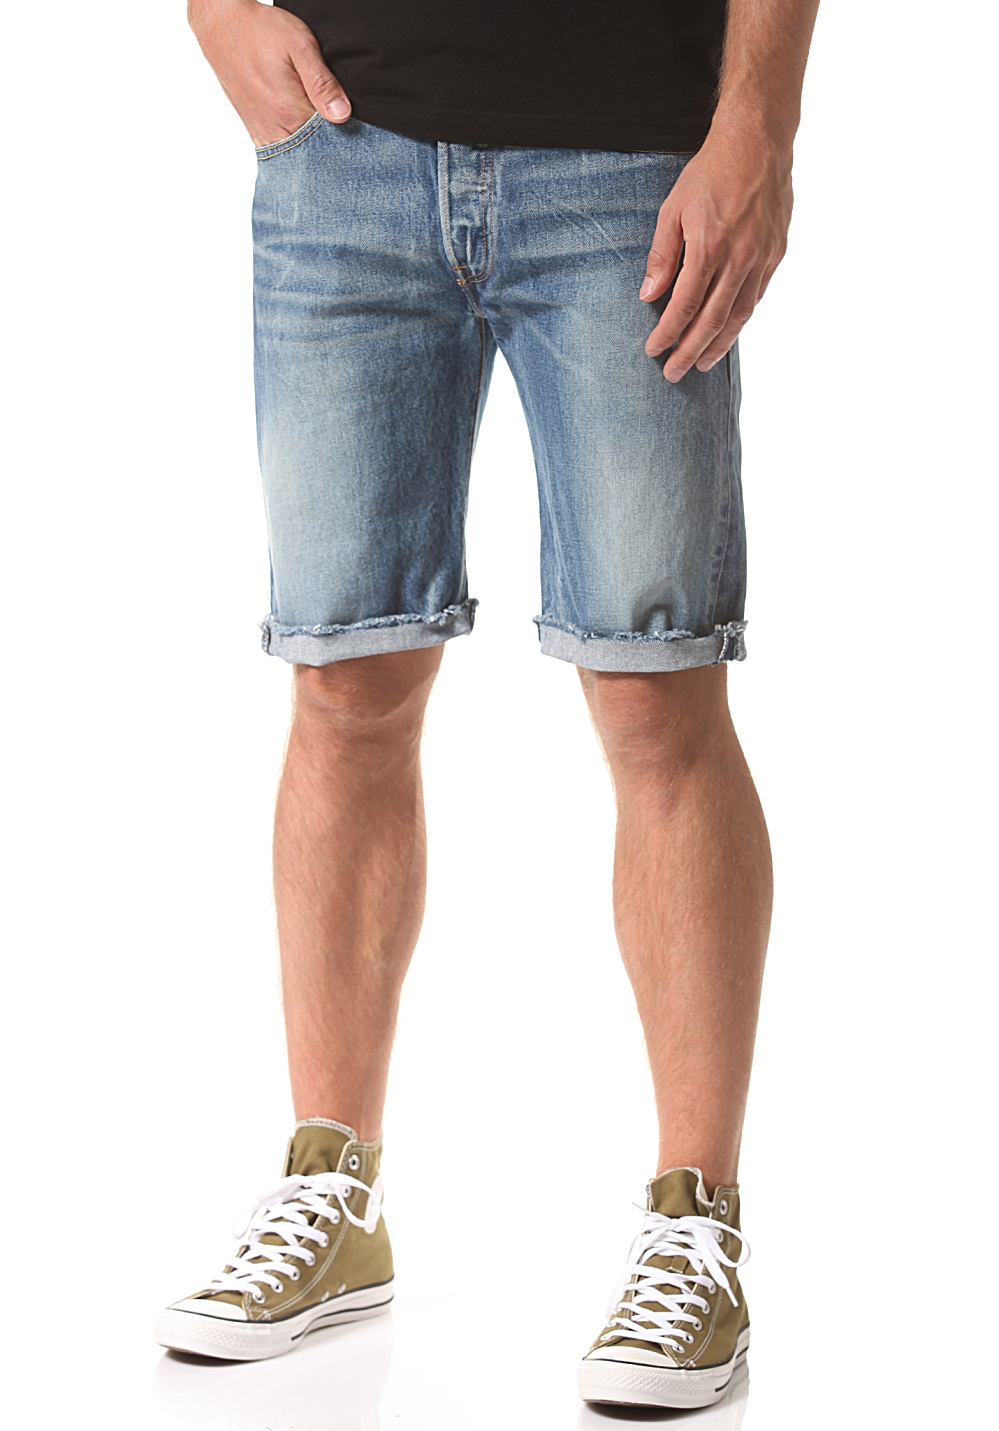 a91219ee Levi's 501 Cut Off - Shorts for Men - Blue - Planet Sports